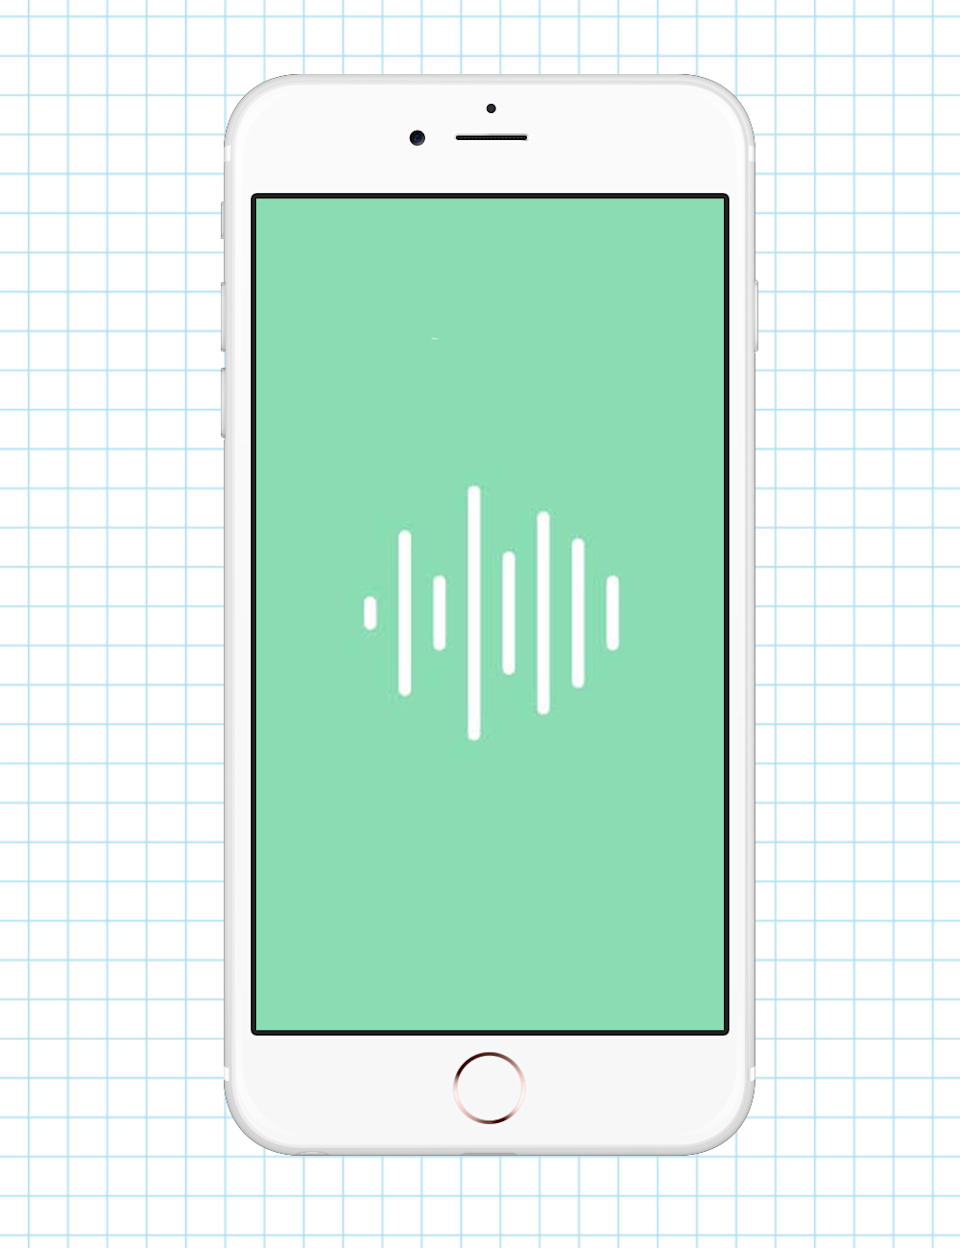 """<p>This super simple app lets you choose from a bunch of different sounds (like thunder, wind, white noise, and even the buzz of a coffee shop) to create your ideal sleep soundtrack. You can create a combo of sounds you love that you can save in the app for future use. Pro tip: If you're using it overnight, keep your phone plugged in—otherwise, you may wake up to a dead battery. <br></p><p><strong>Cost:</strong> $2, <a href=""""https://www.noisli.com/"""" rel=""""nofollow noopener"""" target=""""_blank"""" data-ylk=""""slk:website"""" class=""""link rapid-noclick-resp"""">website</a> is free</p><p><strong>Get it for <a href=""""https://go.redirectingat.com?id=74968X1596630&url=https%3A%2F%2Fitunes.apple.com%2Fus%2Fapp%2Fnoisli%2Fid862773459&sref=https%3A%2F%2Fwww.goodhousekeeping.com%2Fhealth%2Fwellness%2Fg26963663%2Fbest-sleep-apps%2F"""" rel=""""nofollow noopener"""" target=""""_blank"""" data-ylk=""""slk:iOS"""" class=""""link rapid-noclick-resp"""">iOS</a> or <a href=""""https://play.google.com/store/apps/details?id=com.noisli.noisli"""" rel=""""nofollow noopener"""" target=""""_blank"""" data-ylk=""""slk:Android"""" class=""""link rapid-noclick-resp"""">Android</a>.</strong></p>"""